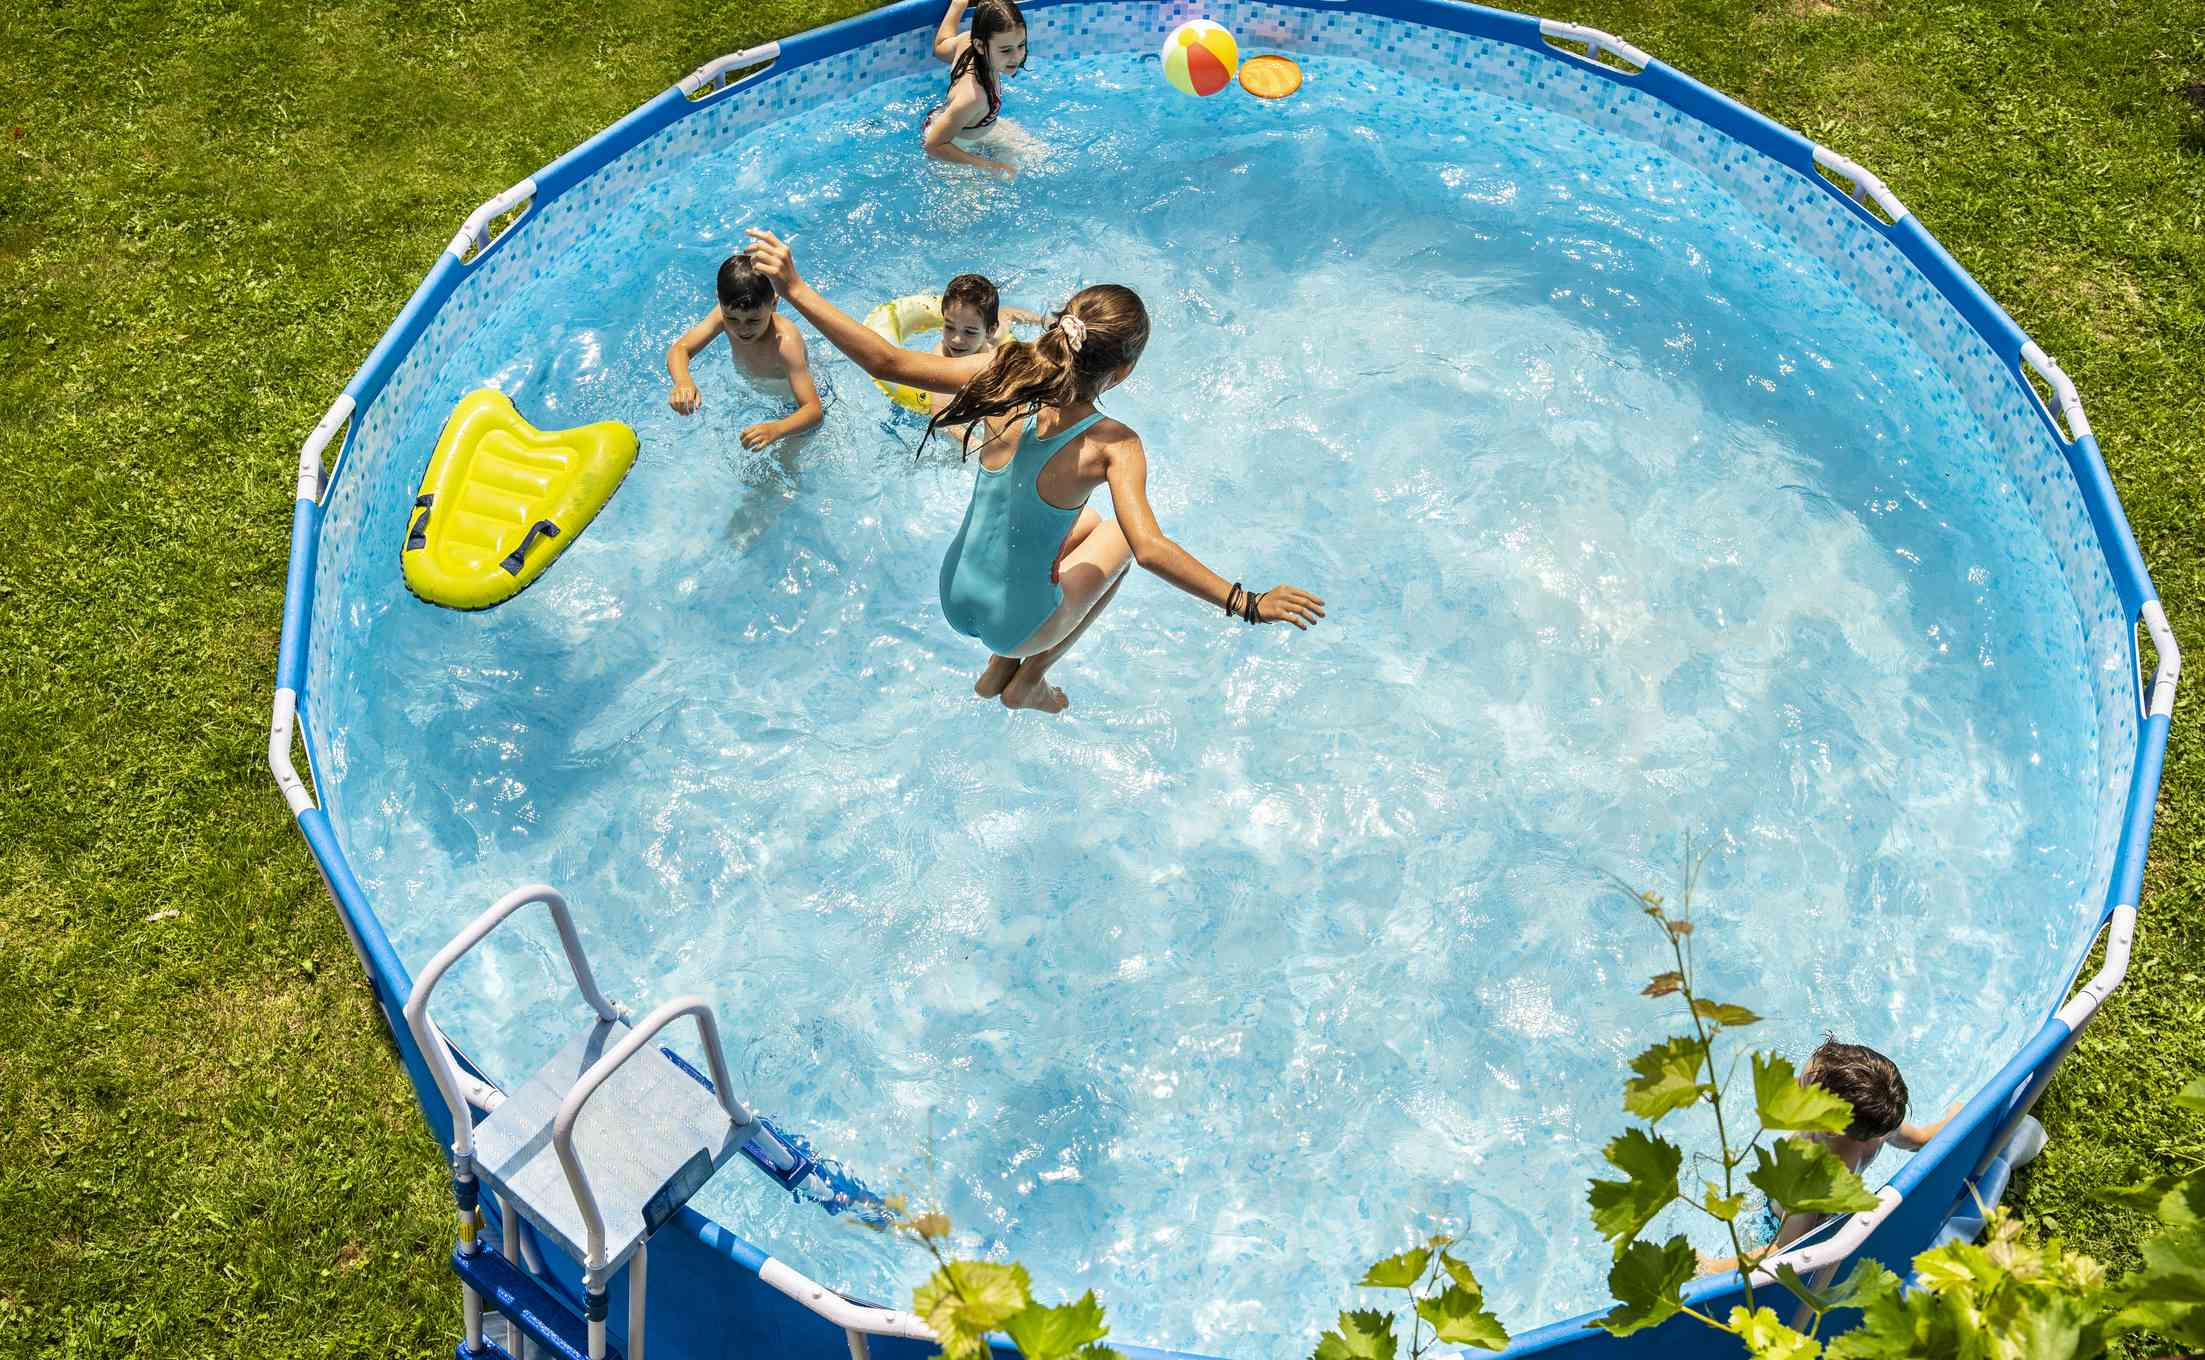 Children playing in above-ground pool